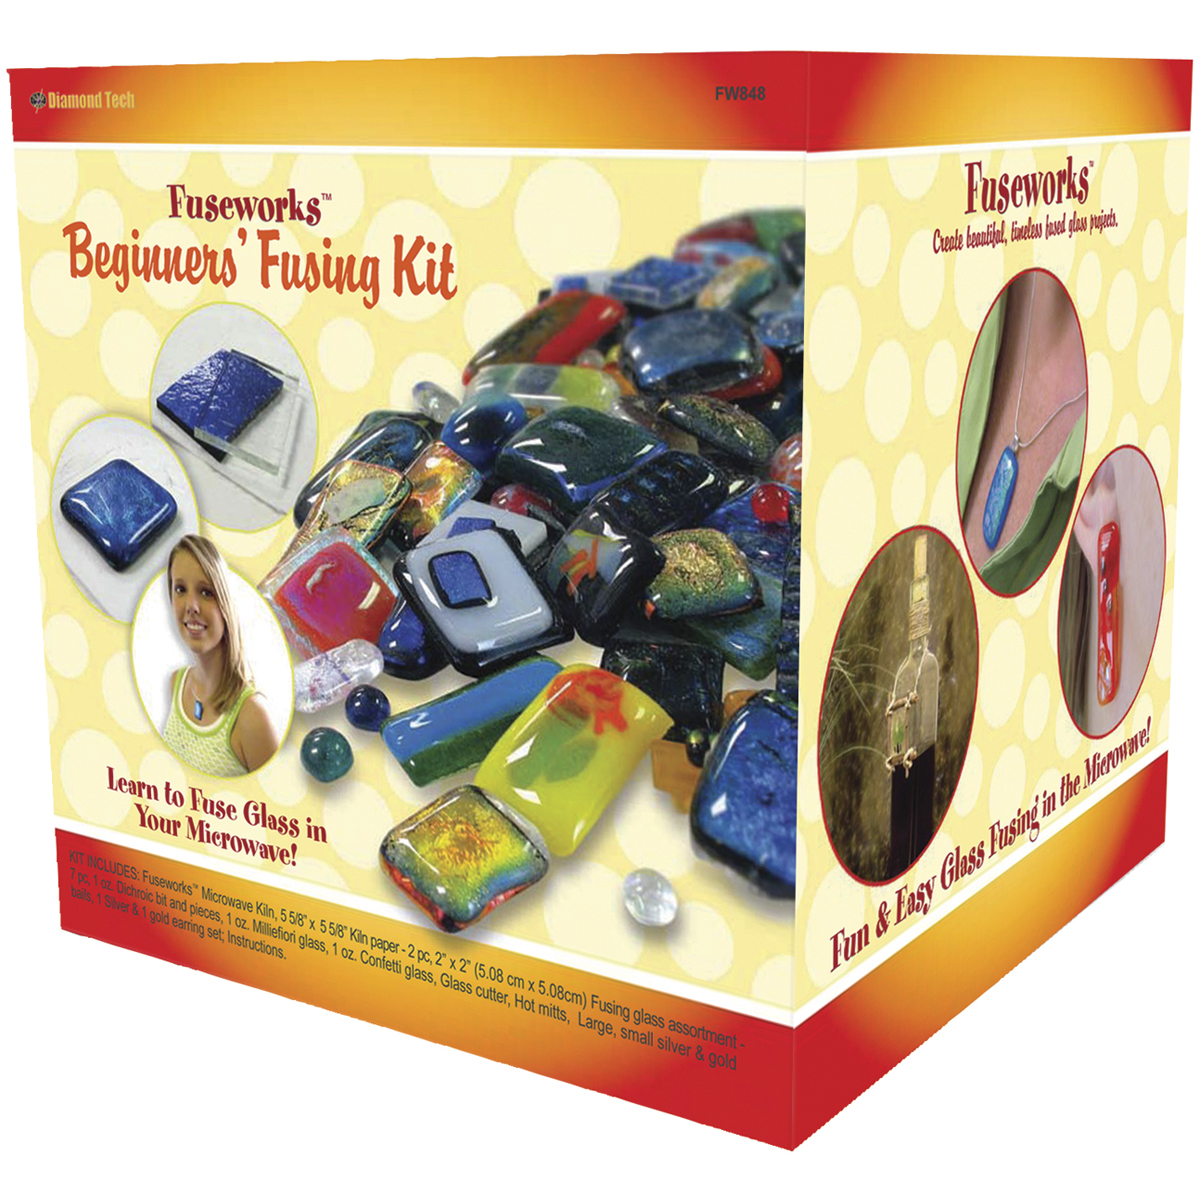 Fuseworks Beginners Fusing Kit-